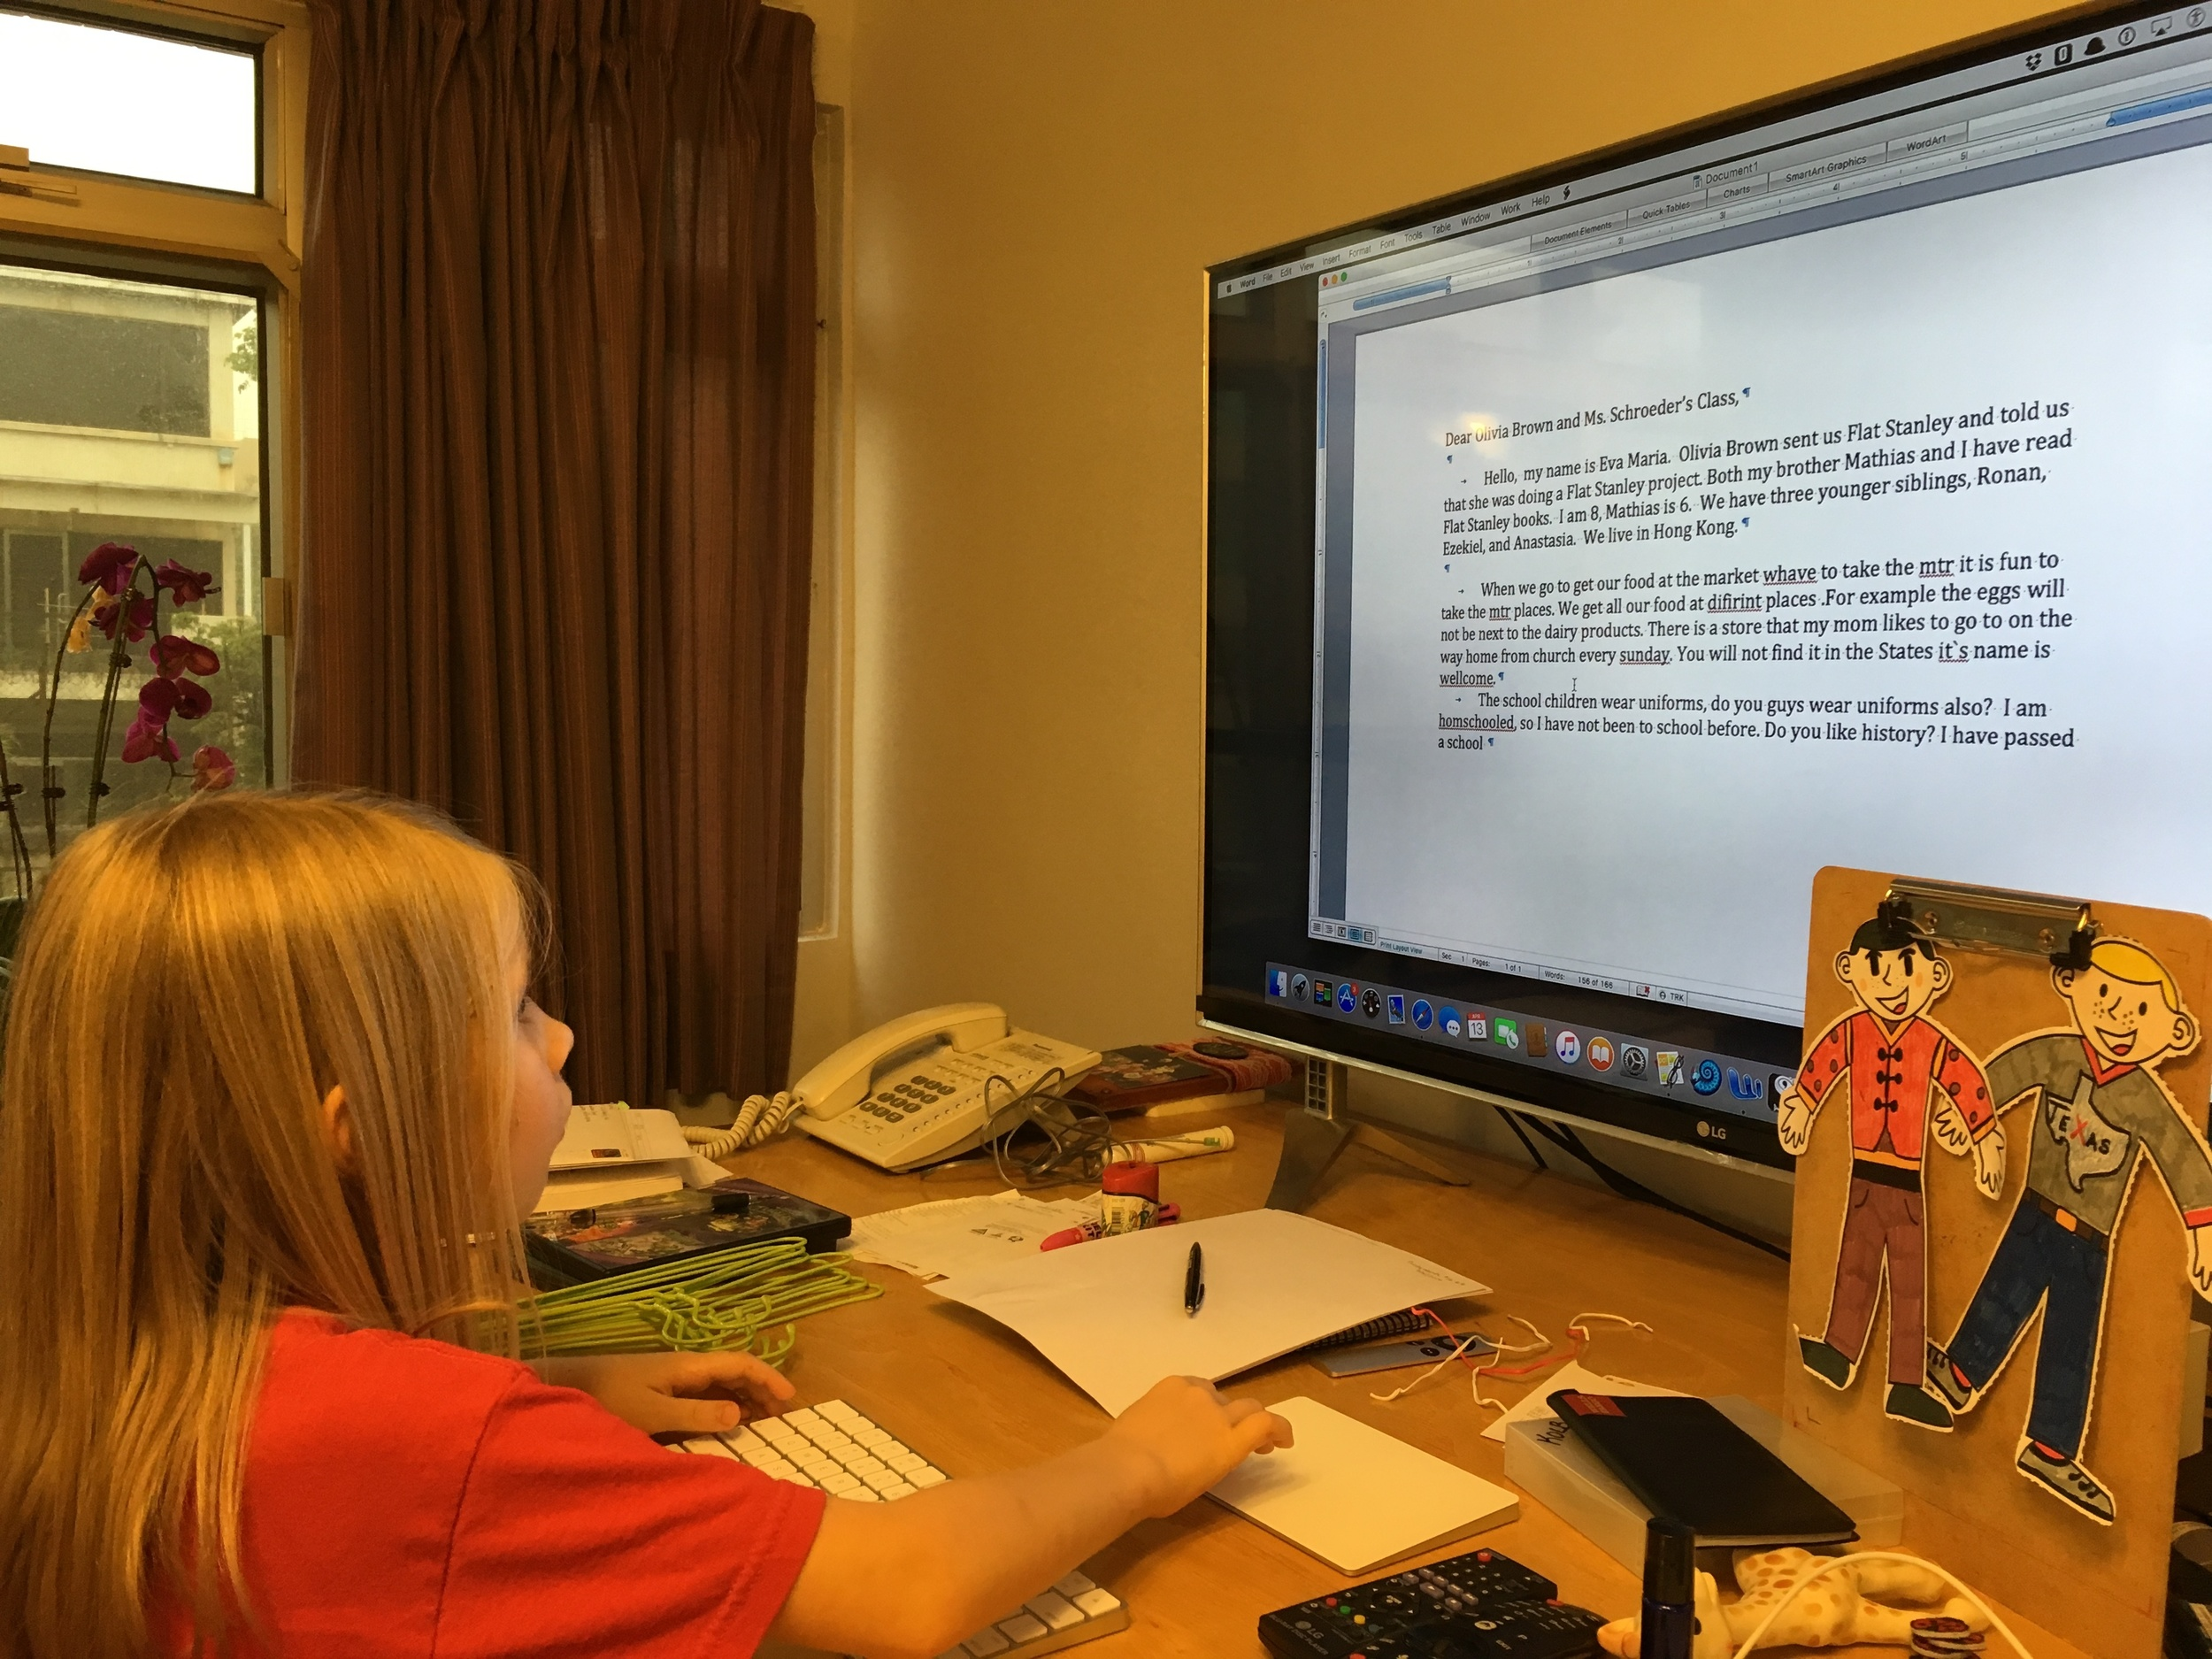 Eva Maria writing her Flat Stanley letter.